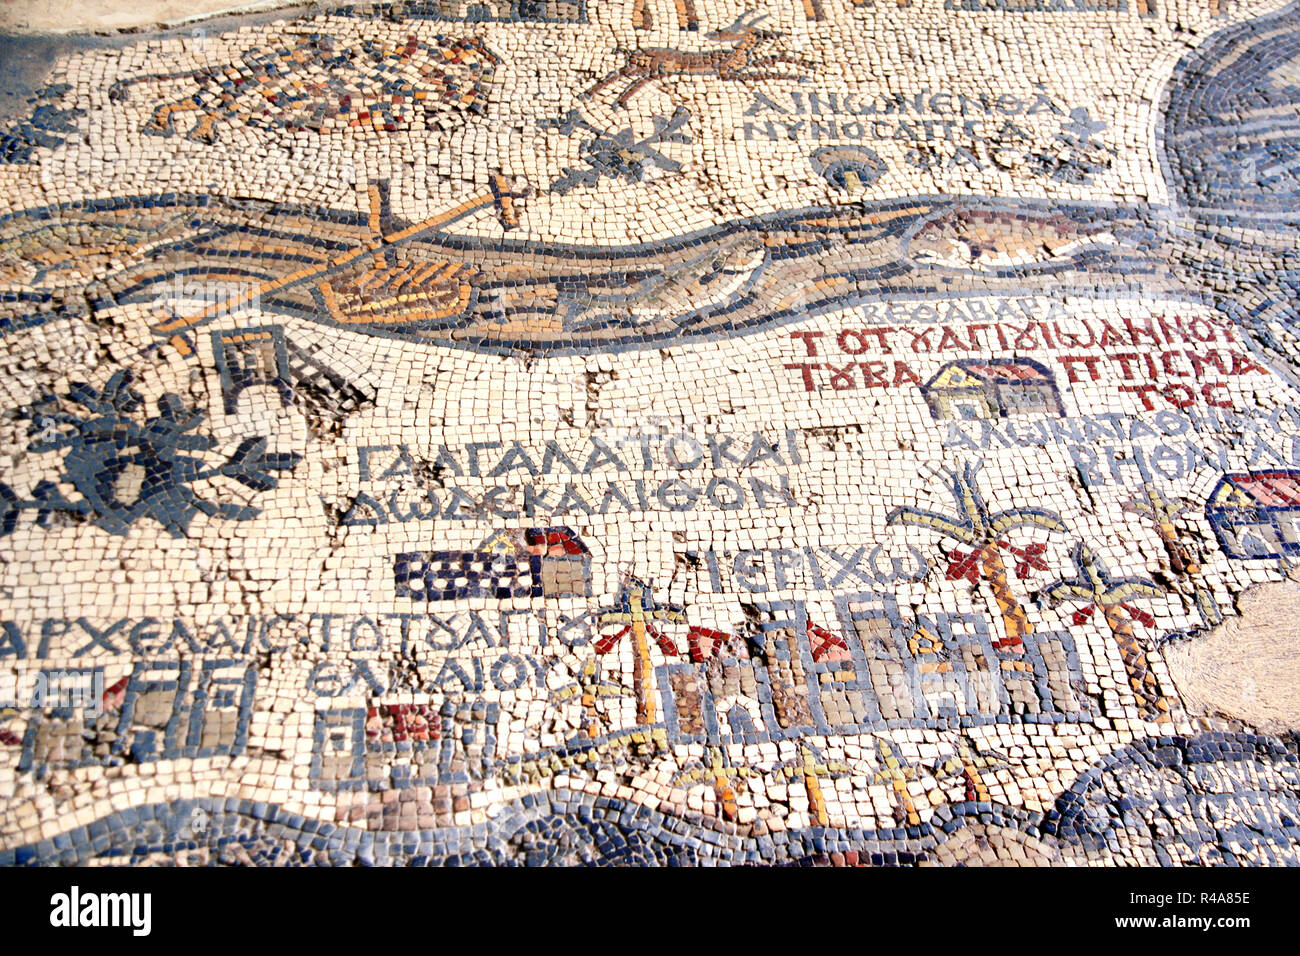 Fragment of ancient floor byzantine mosaic with map of Holy Land on floor of Madaba St George Church, Jordan, Middle East Stock Photo